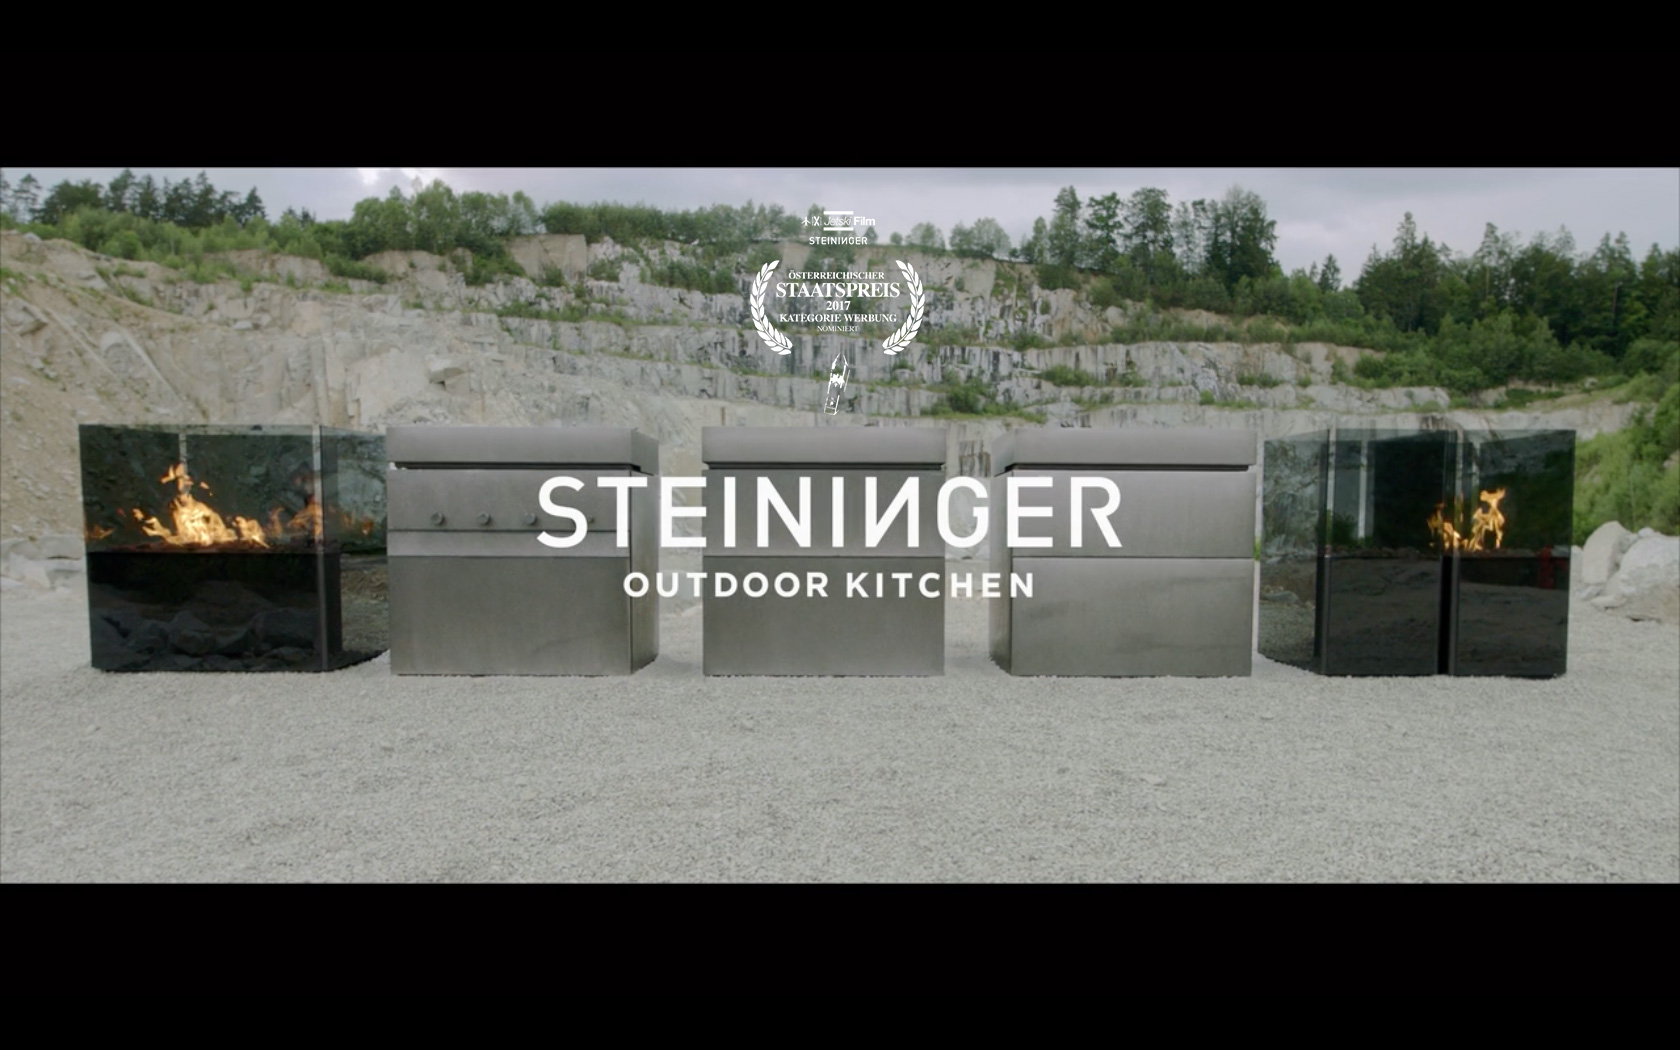 Steininger Rock.Air   Corporate film for Steininger Desiger's Rock.Air outdoor kitchen